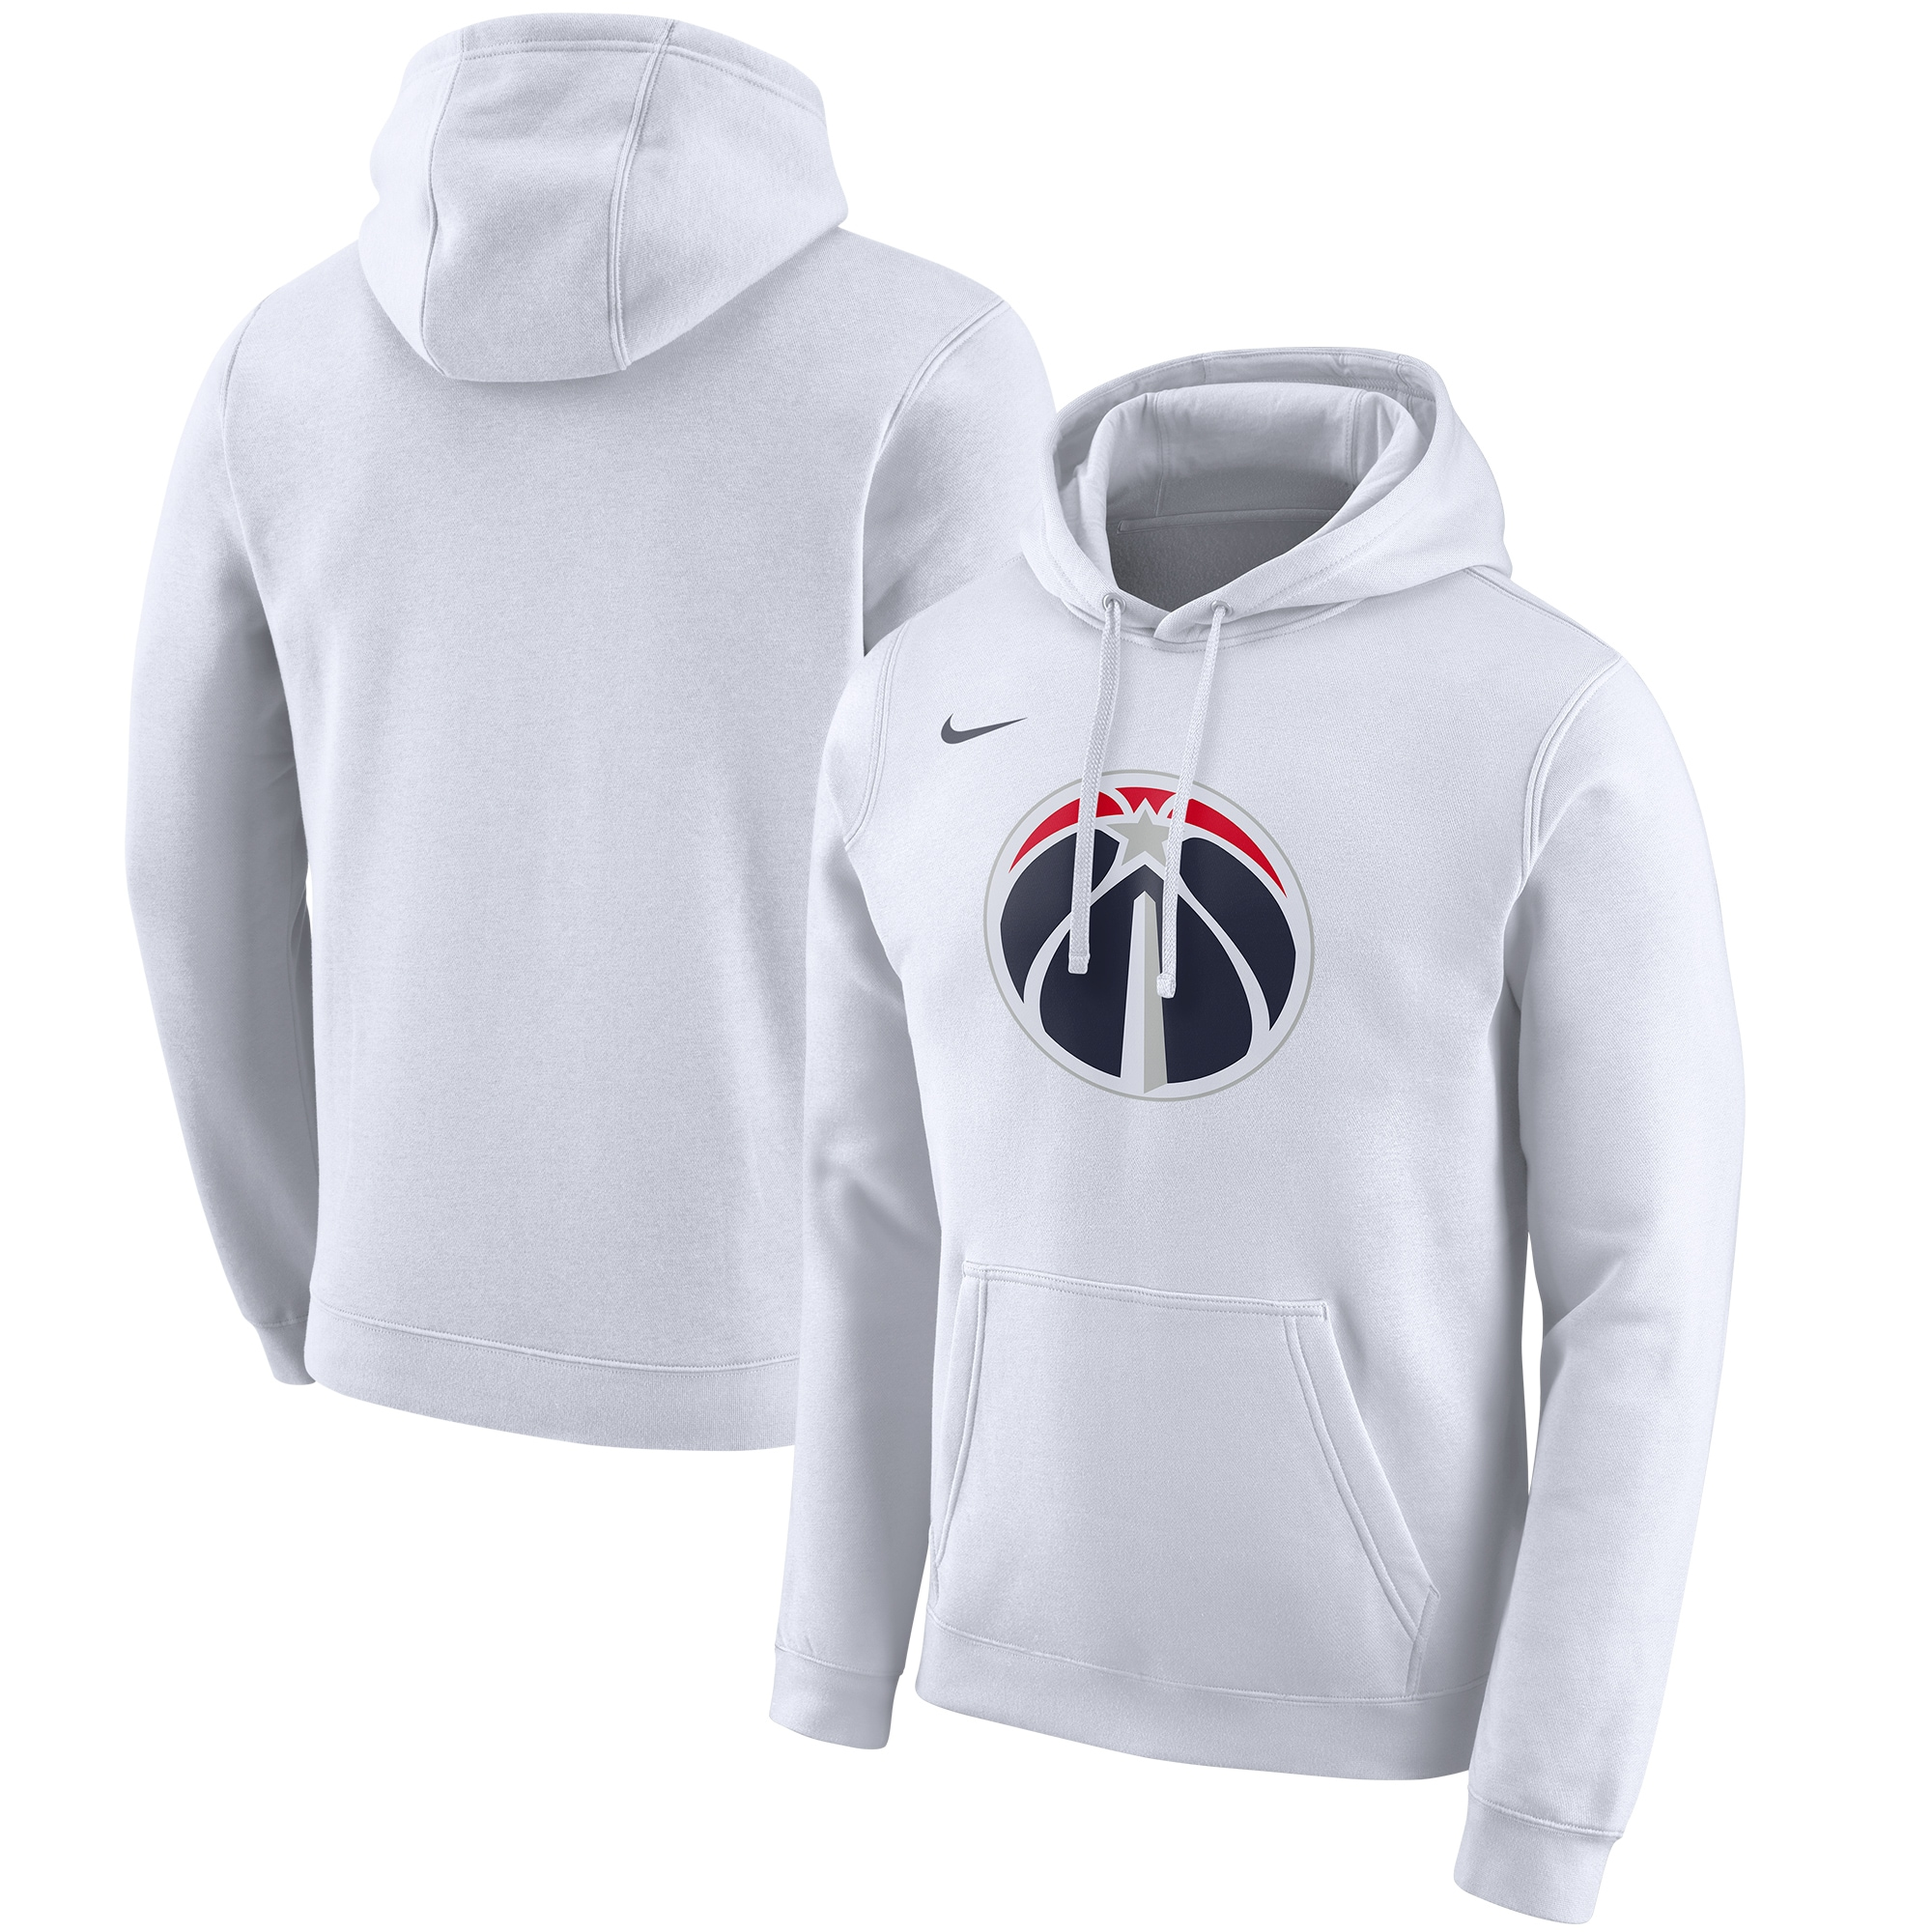 Washington Wizards Nike 2019/20 City Edition Club Pullover Hoodie - White